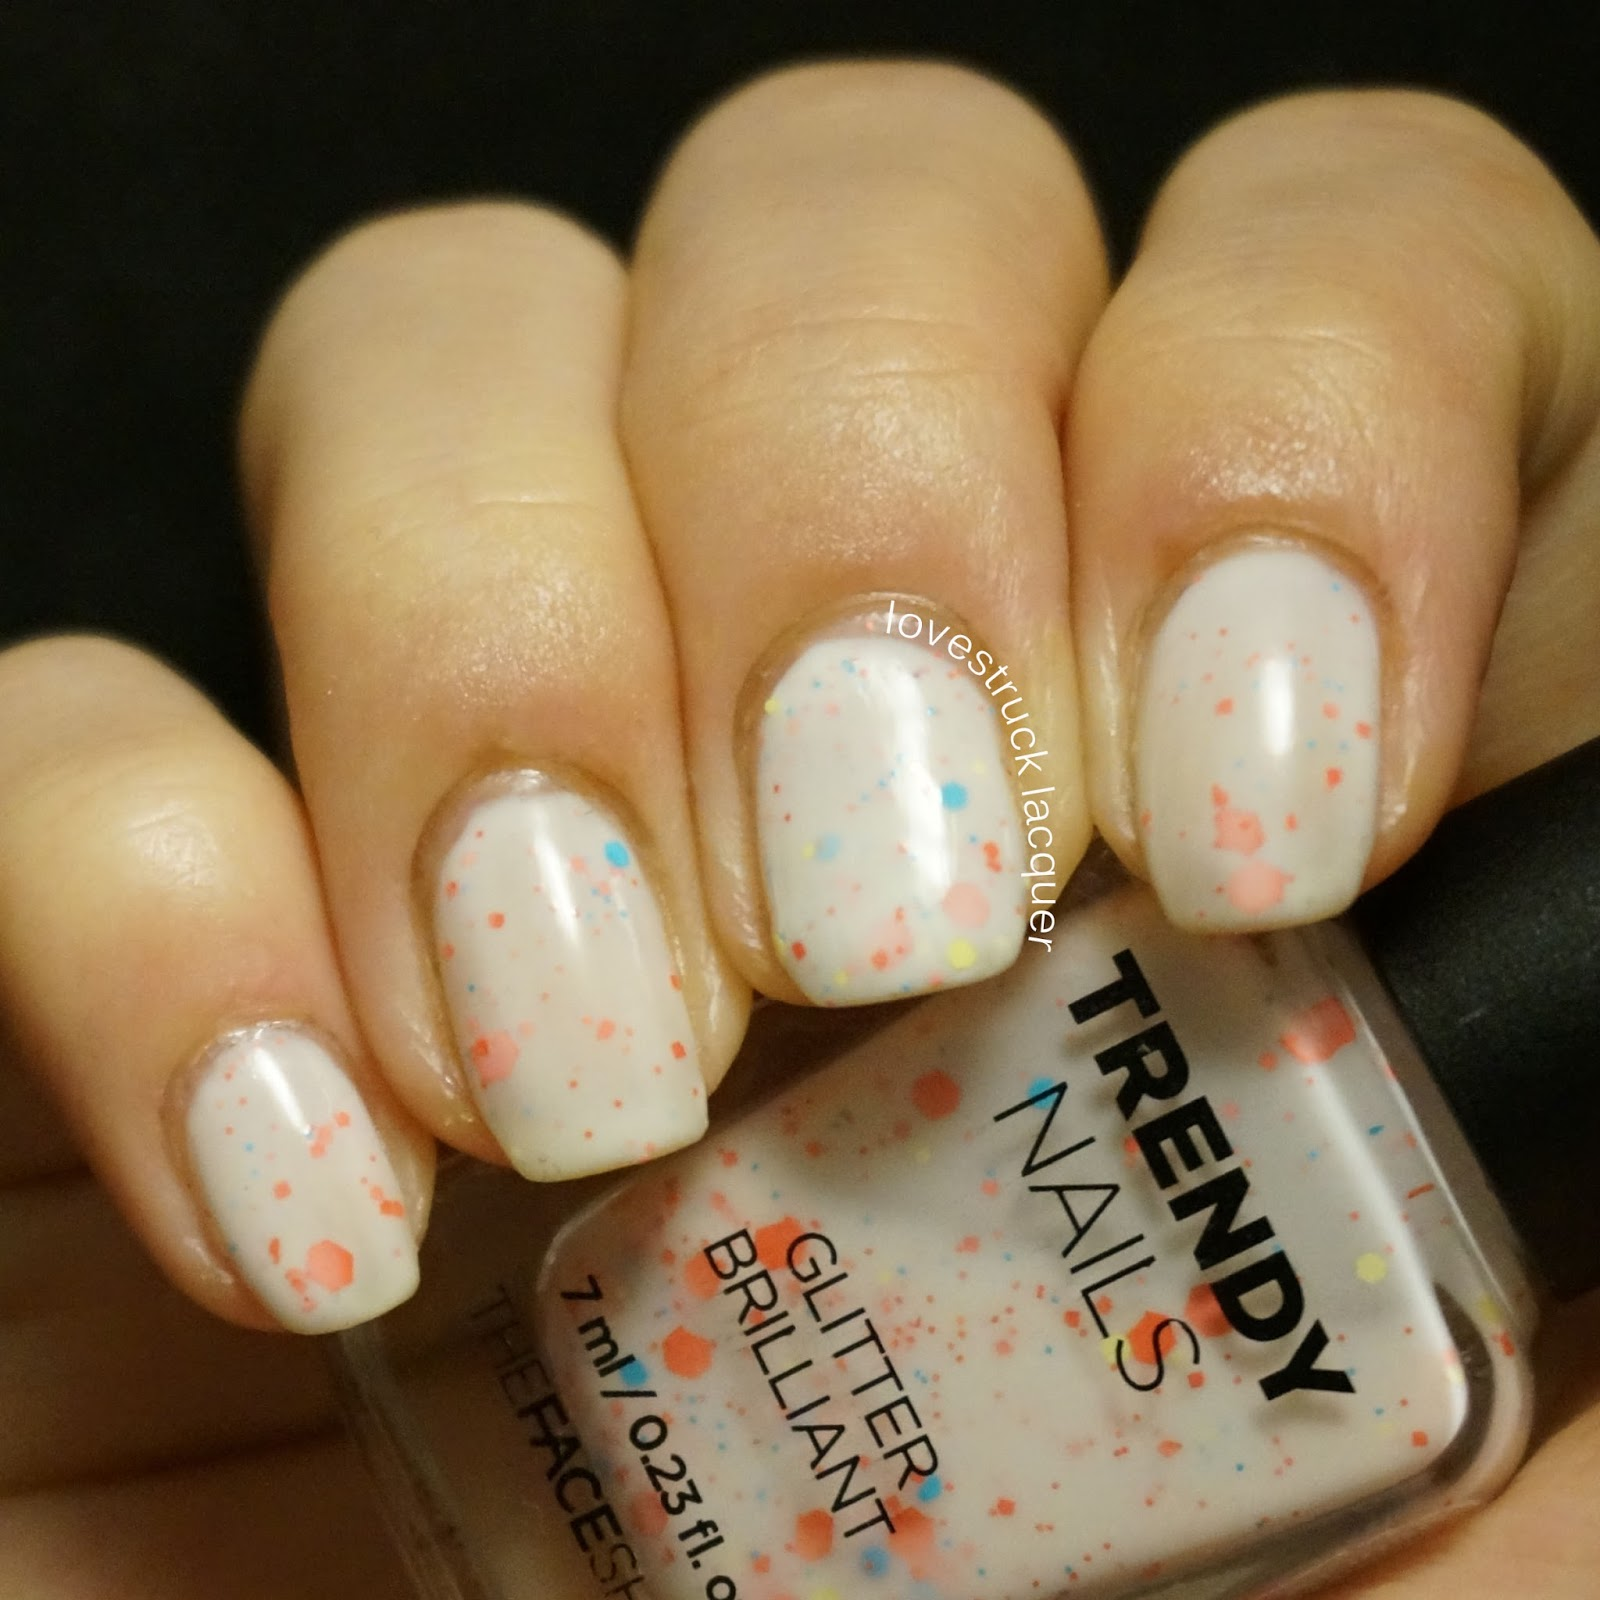 Lovestruck Lacquer: The Face Shop White Crelly Glitter